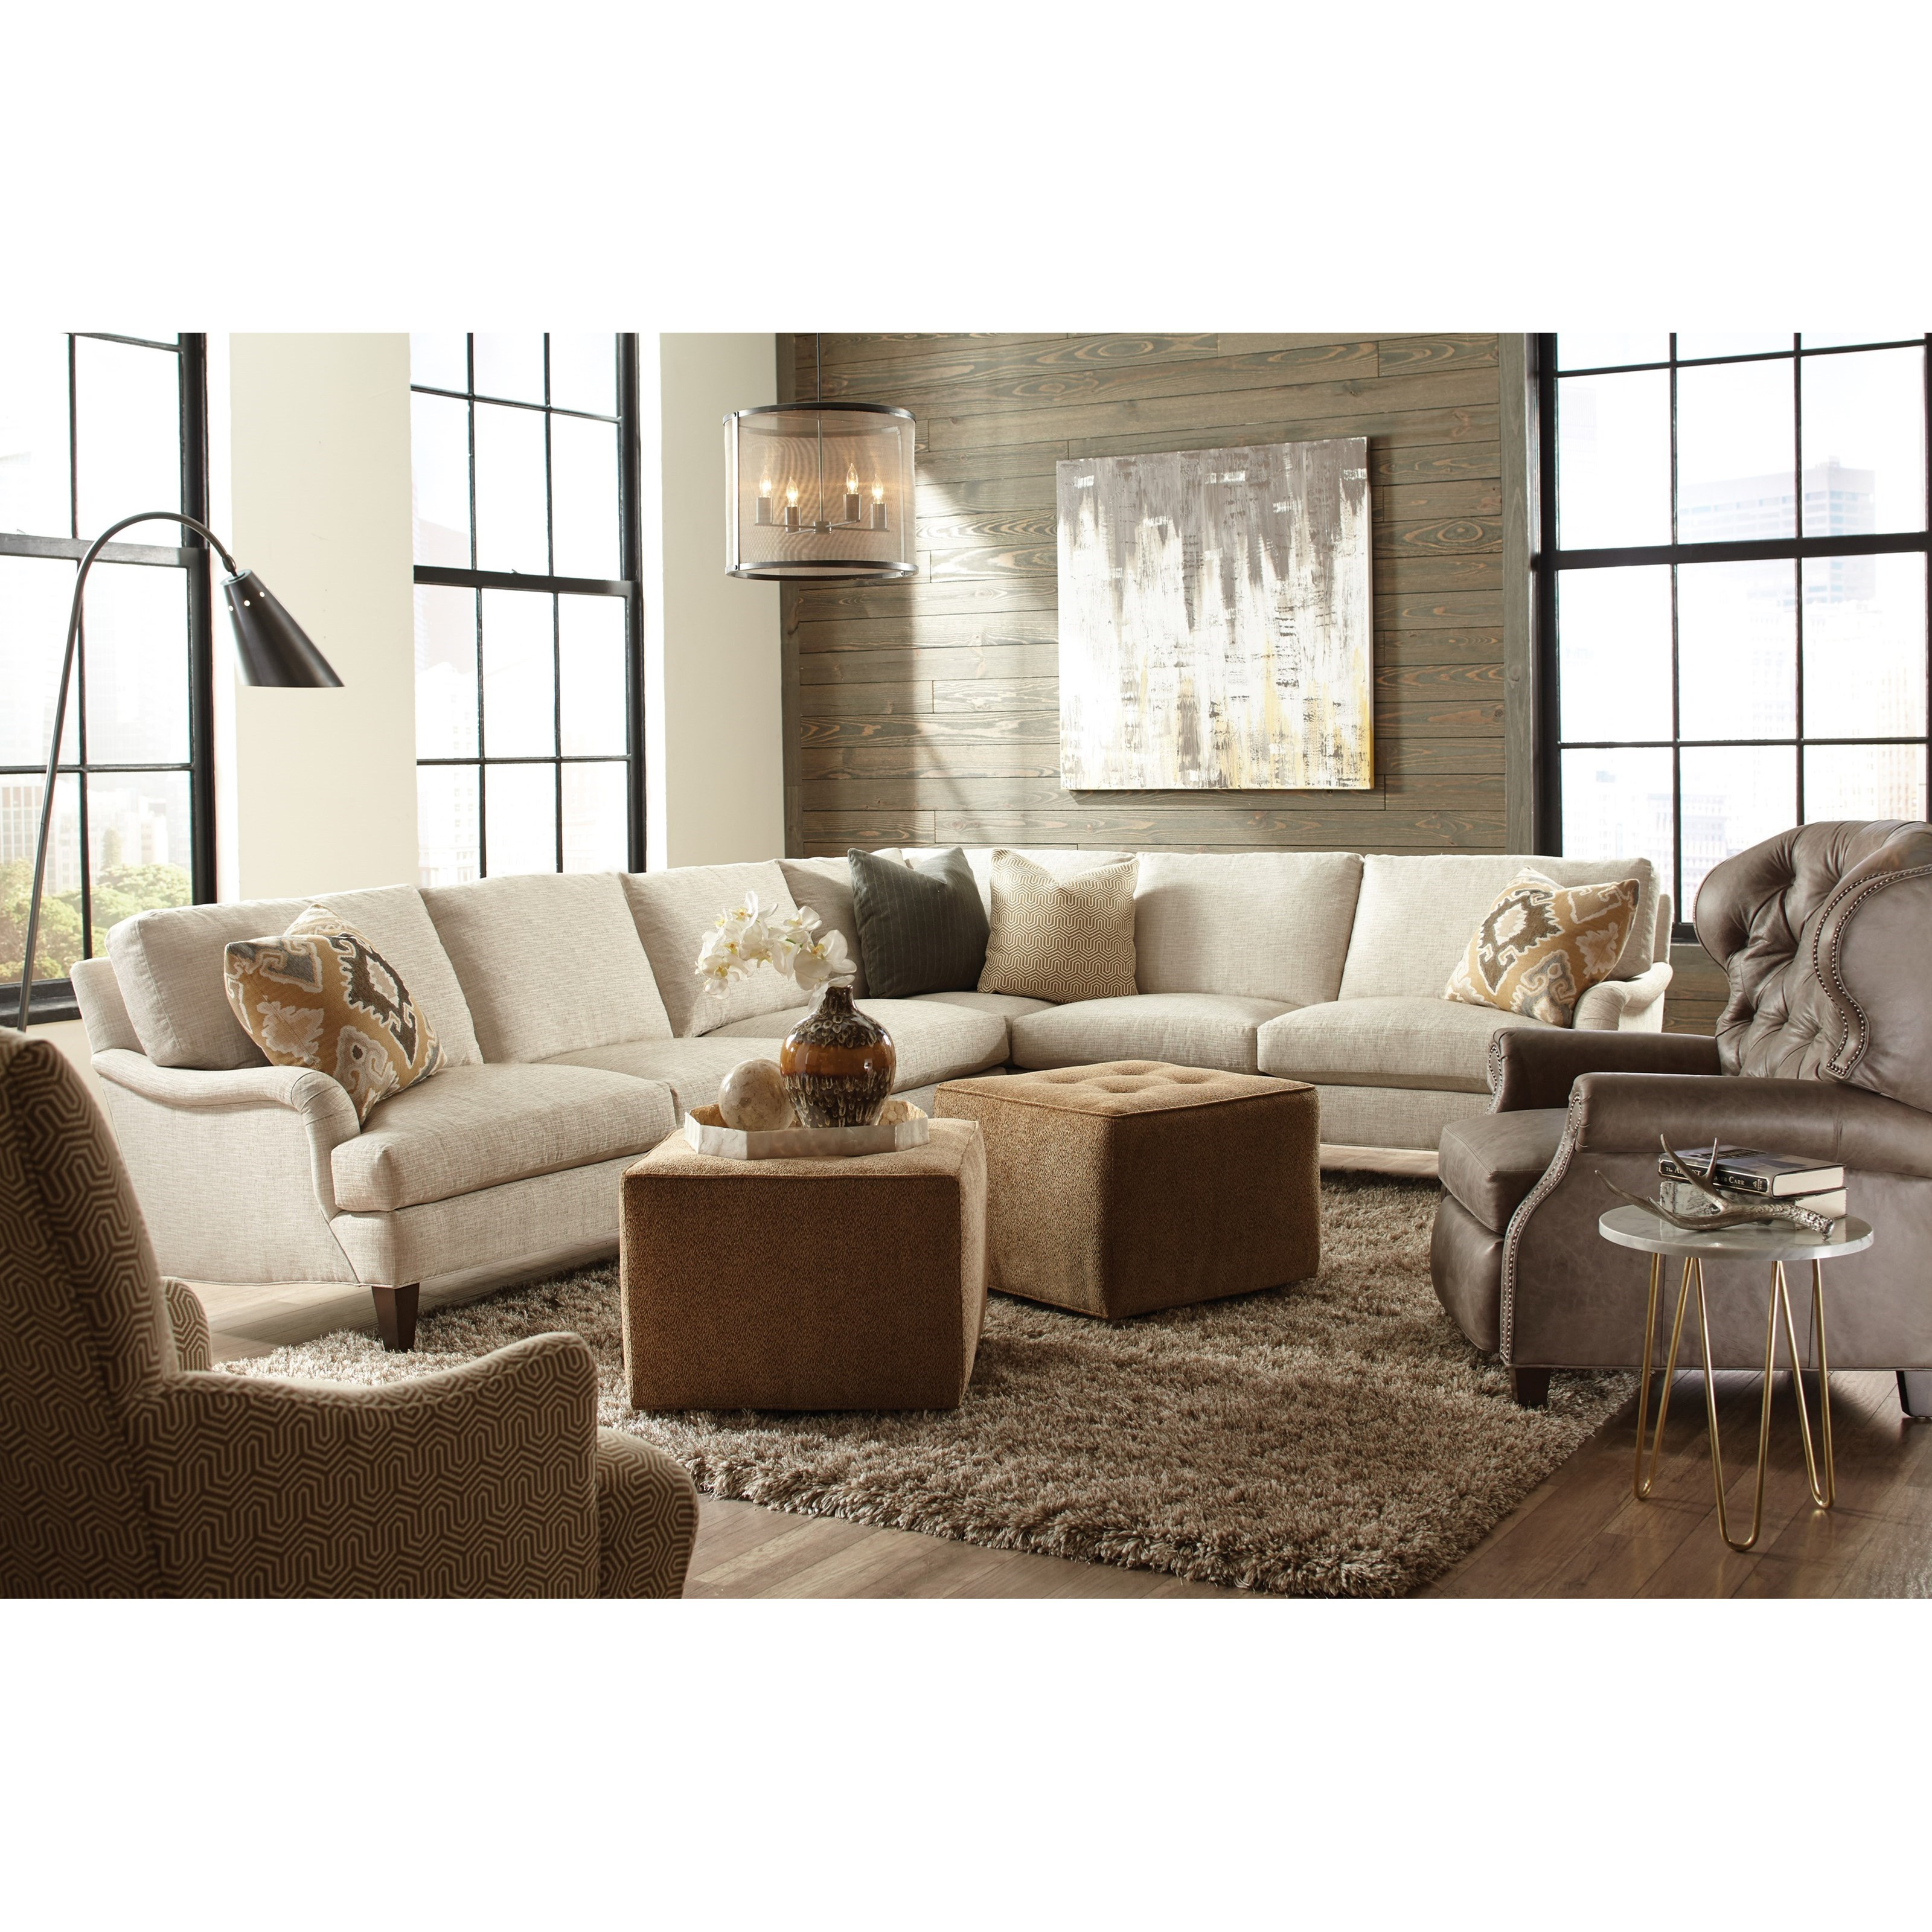 huntington sectional sofa the leather company cardiff house harper two piece traditional corner